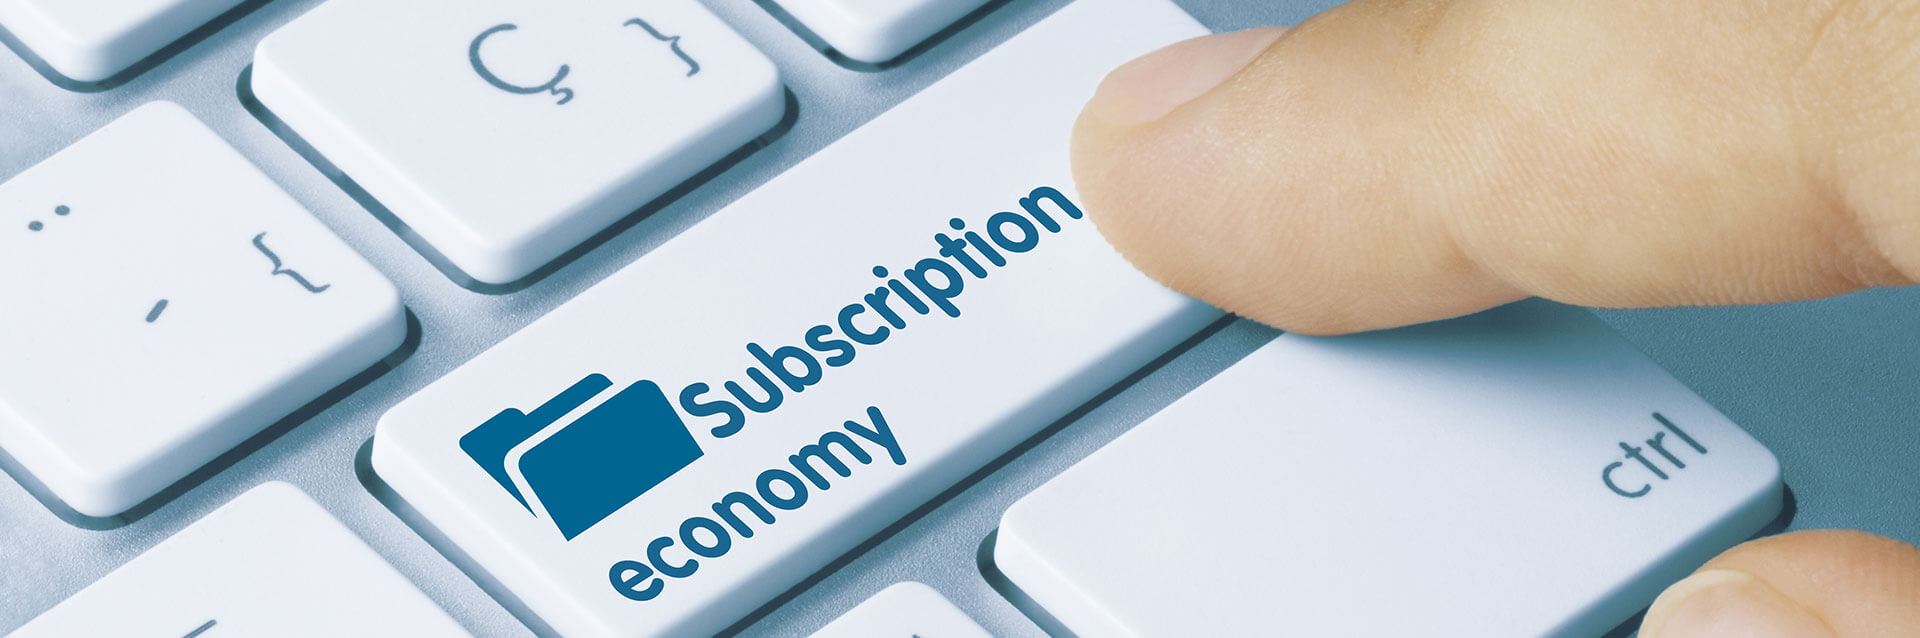 Subscription-economy